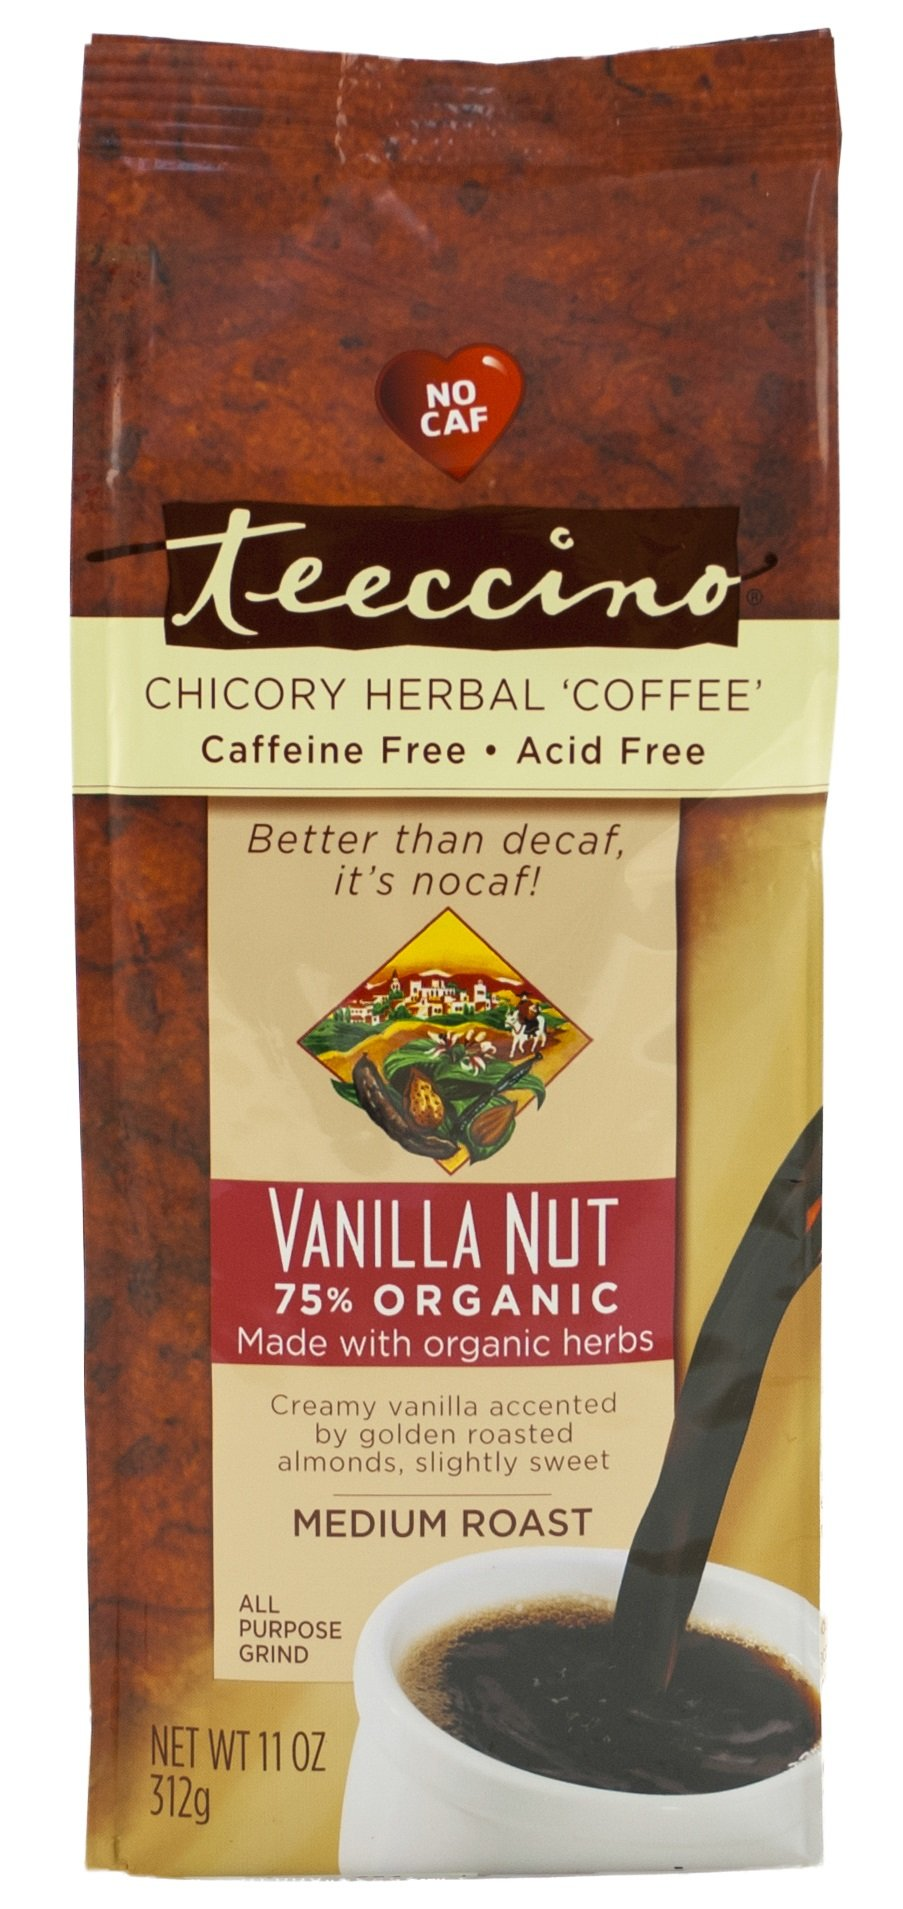 Teeccino Vanilla Nut Chicory Herbal Coffee Alternative, Caffeine Free, Acid Free,  11 Ounce (Pack of 3)